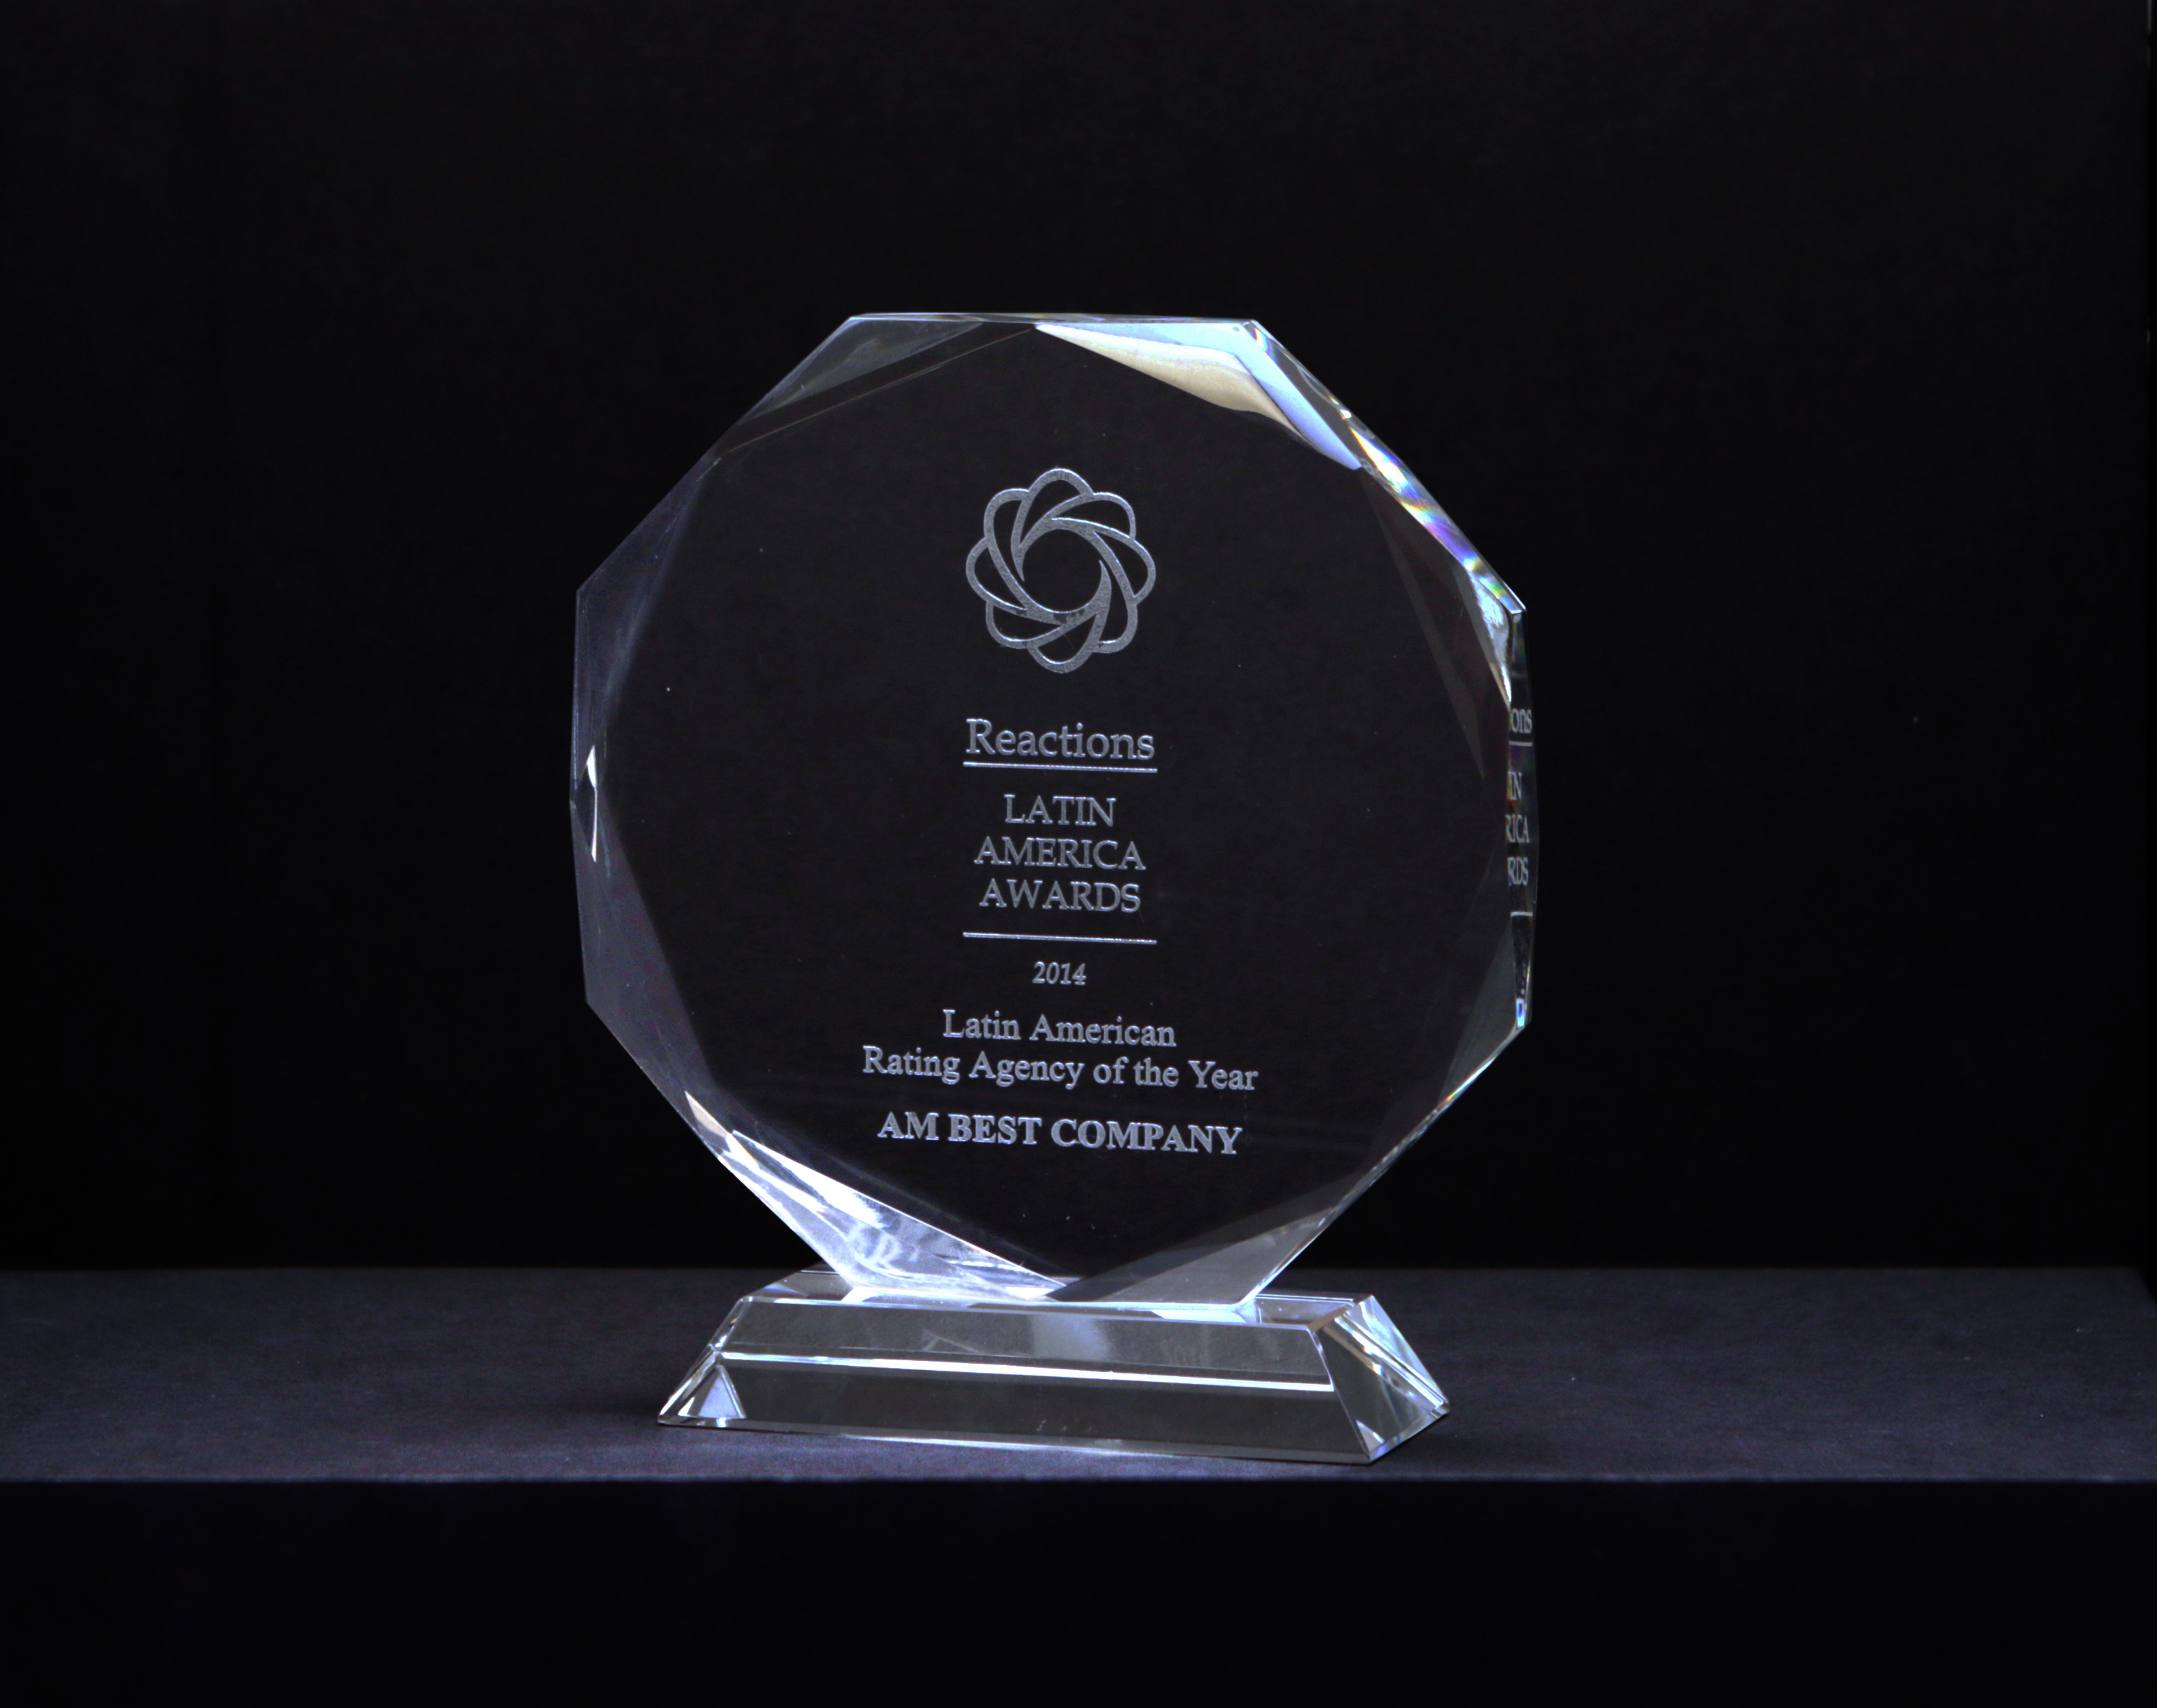 Latin America Rating Agency of the Year